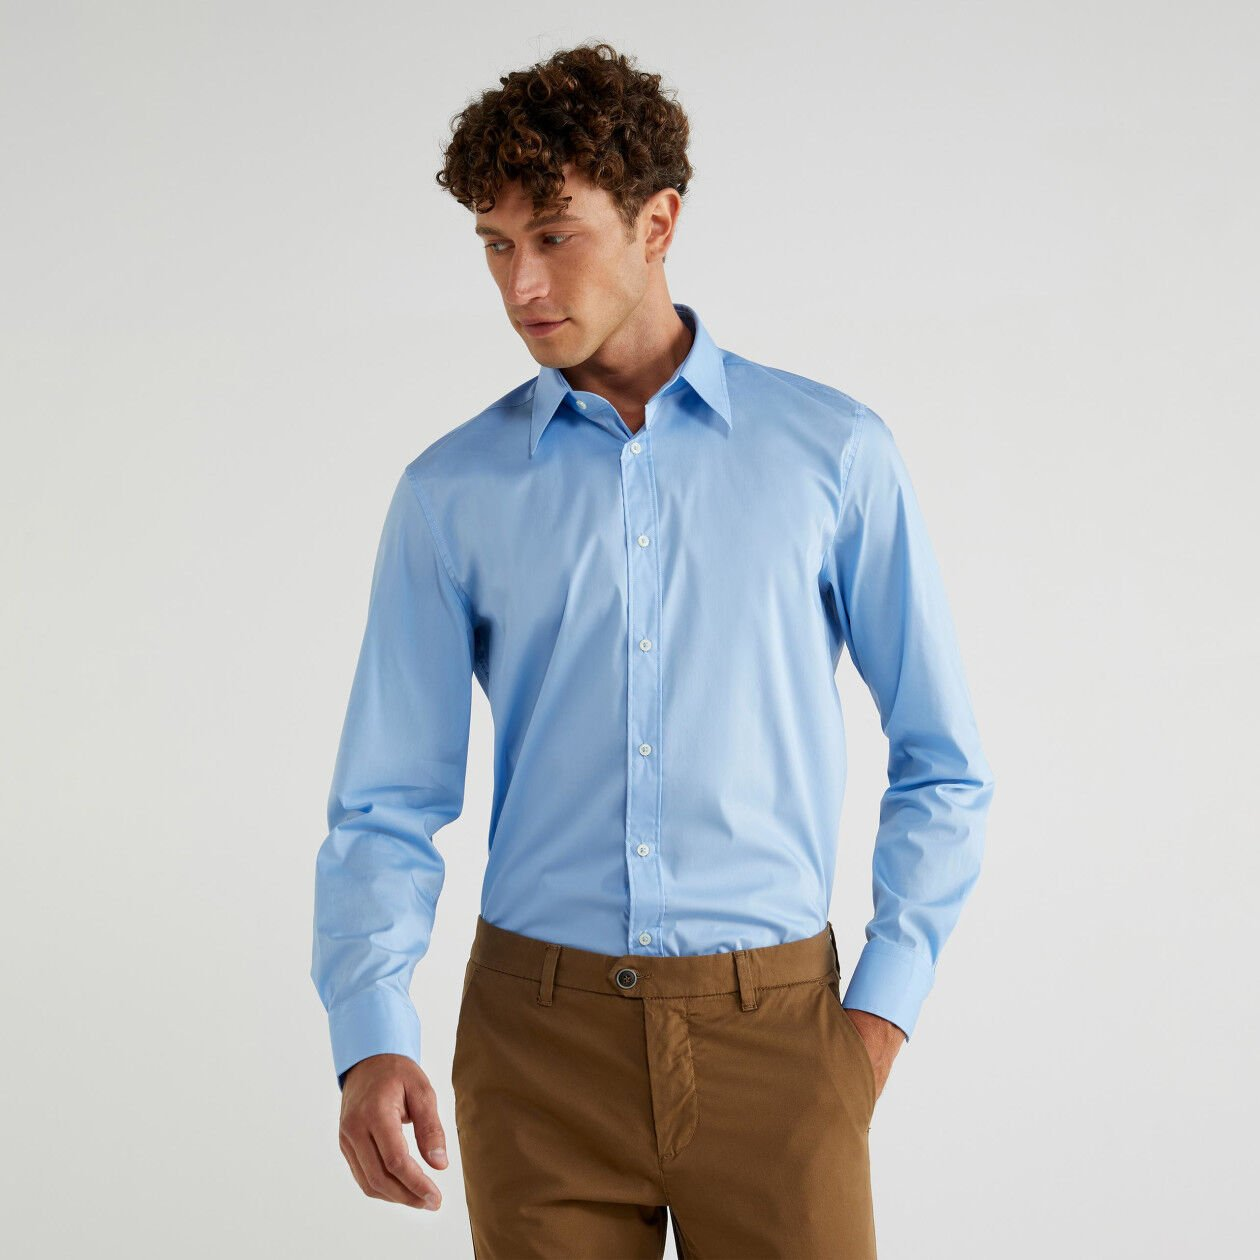 Slim fit shirt